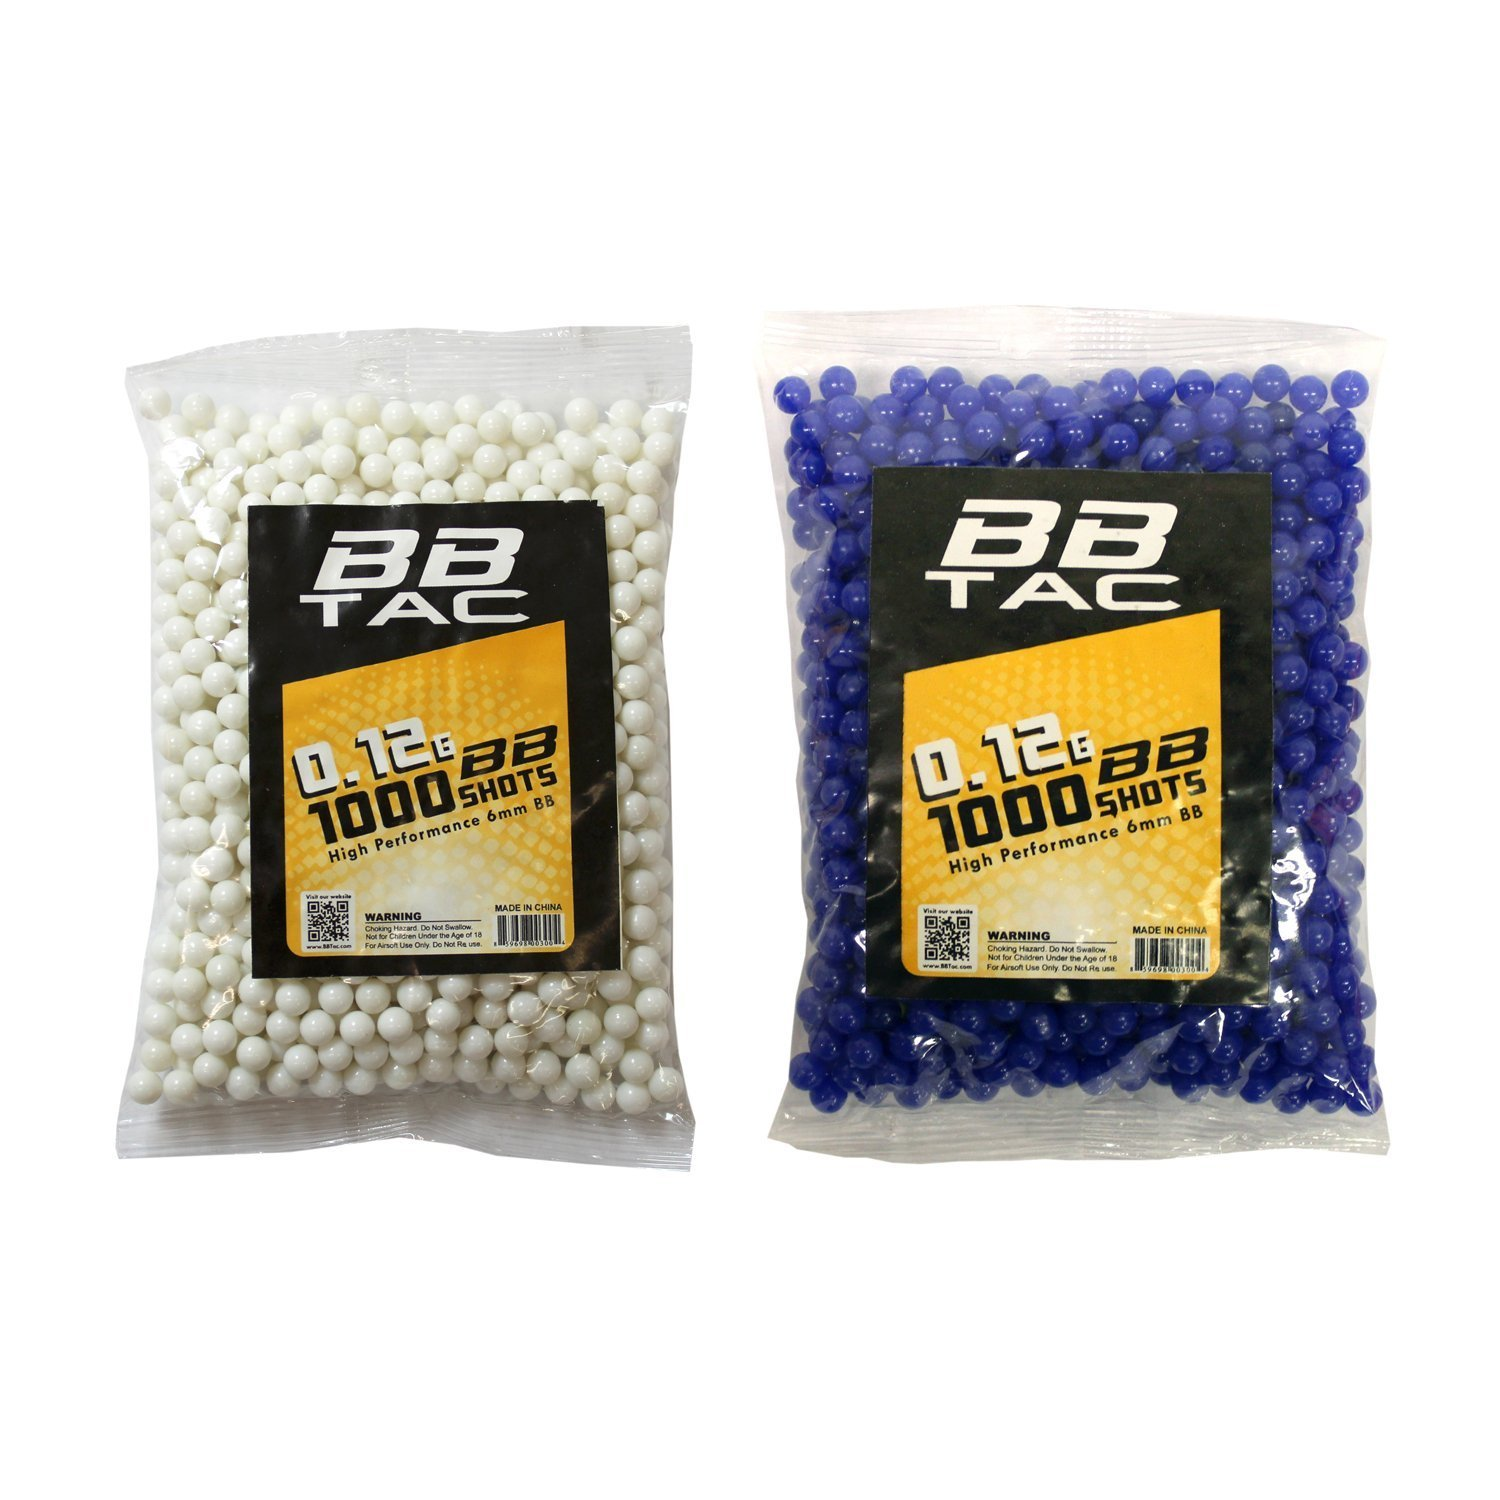 4000 BB Pellets Great for Starter Pack Game Play BBTac Airsoft Gun Package World War II Collection of 4 Airsoft Guns Spring Rifles and Pistols